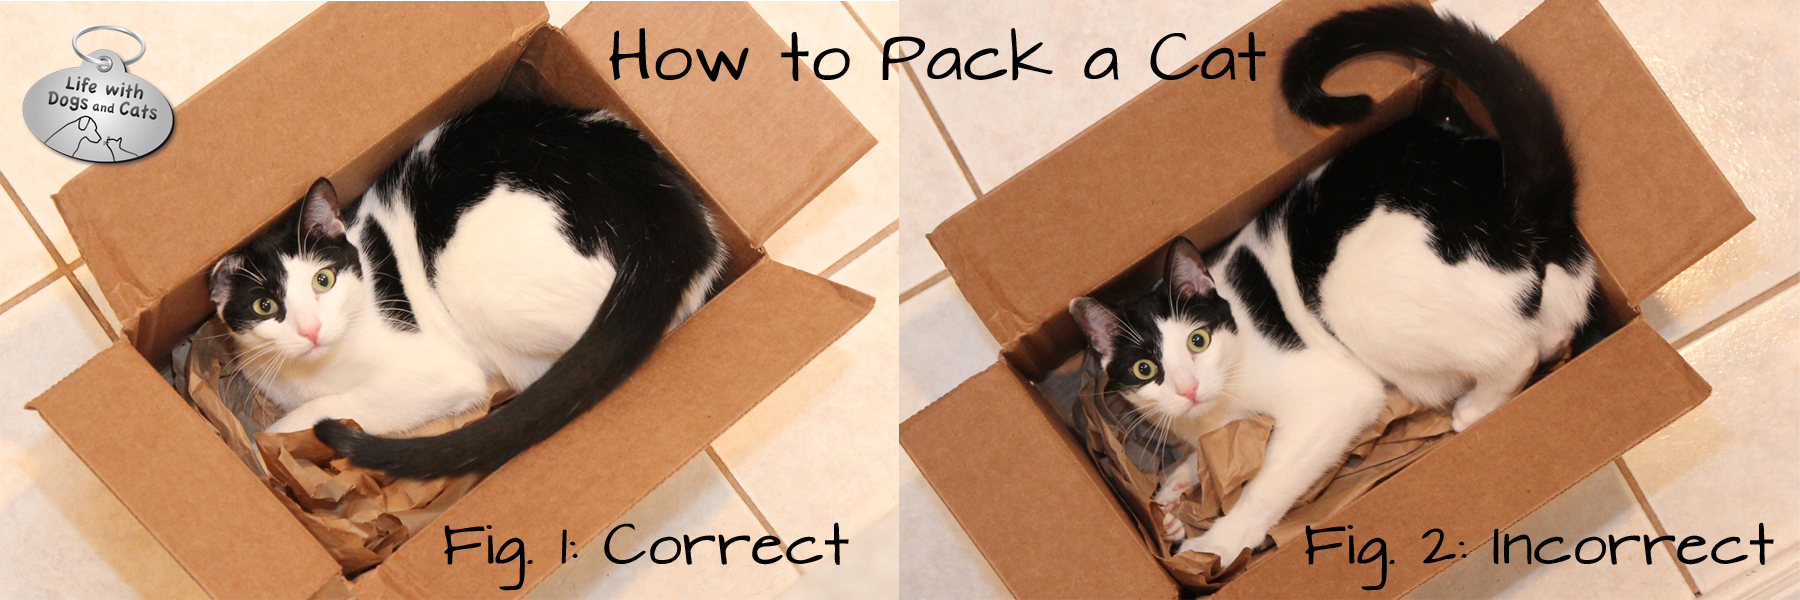 How to pack a cat copy